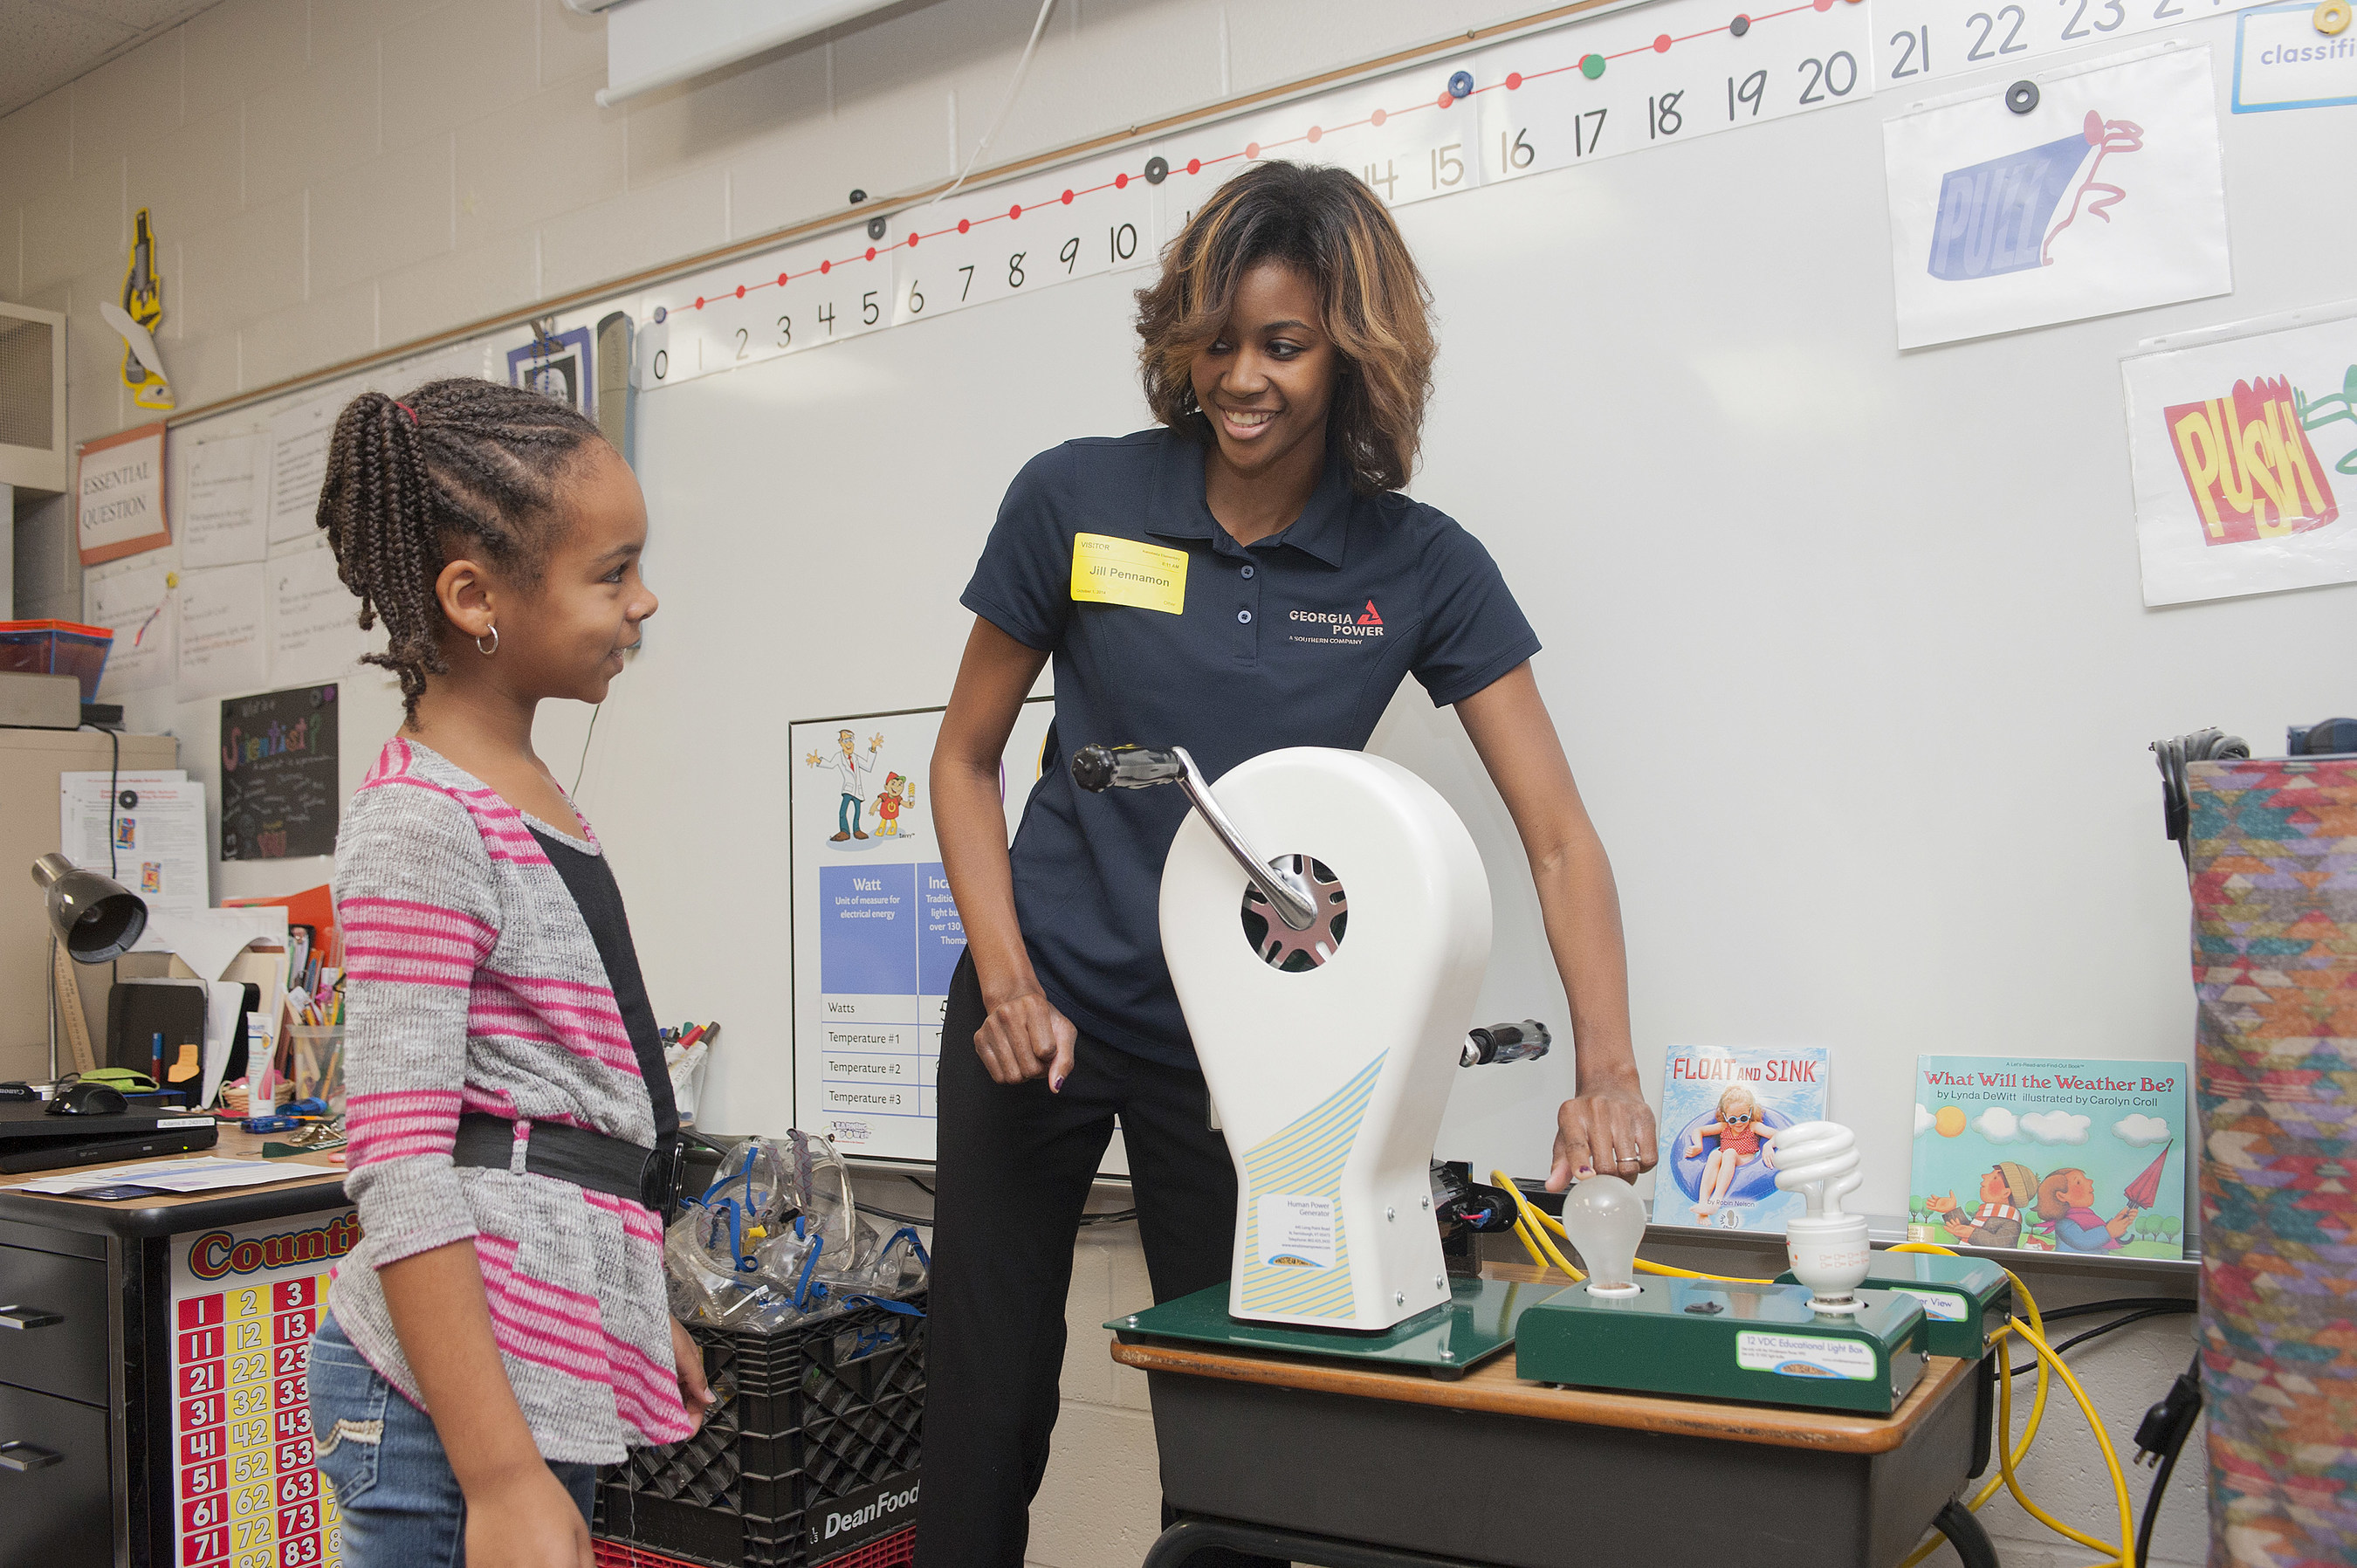 A Georgia Power Learning Power coordinator demonstrates how much less energy a CFL bulb uses than a traditional incandescent bulb for a student. Georgia Power hosted 3,200+ in-school events during the 2015-2016 school year.